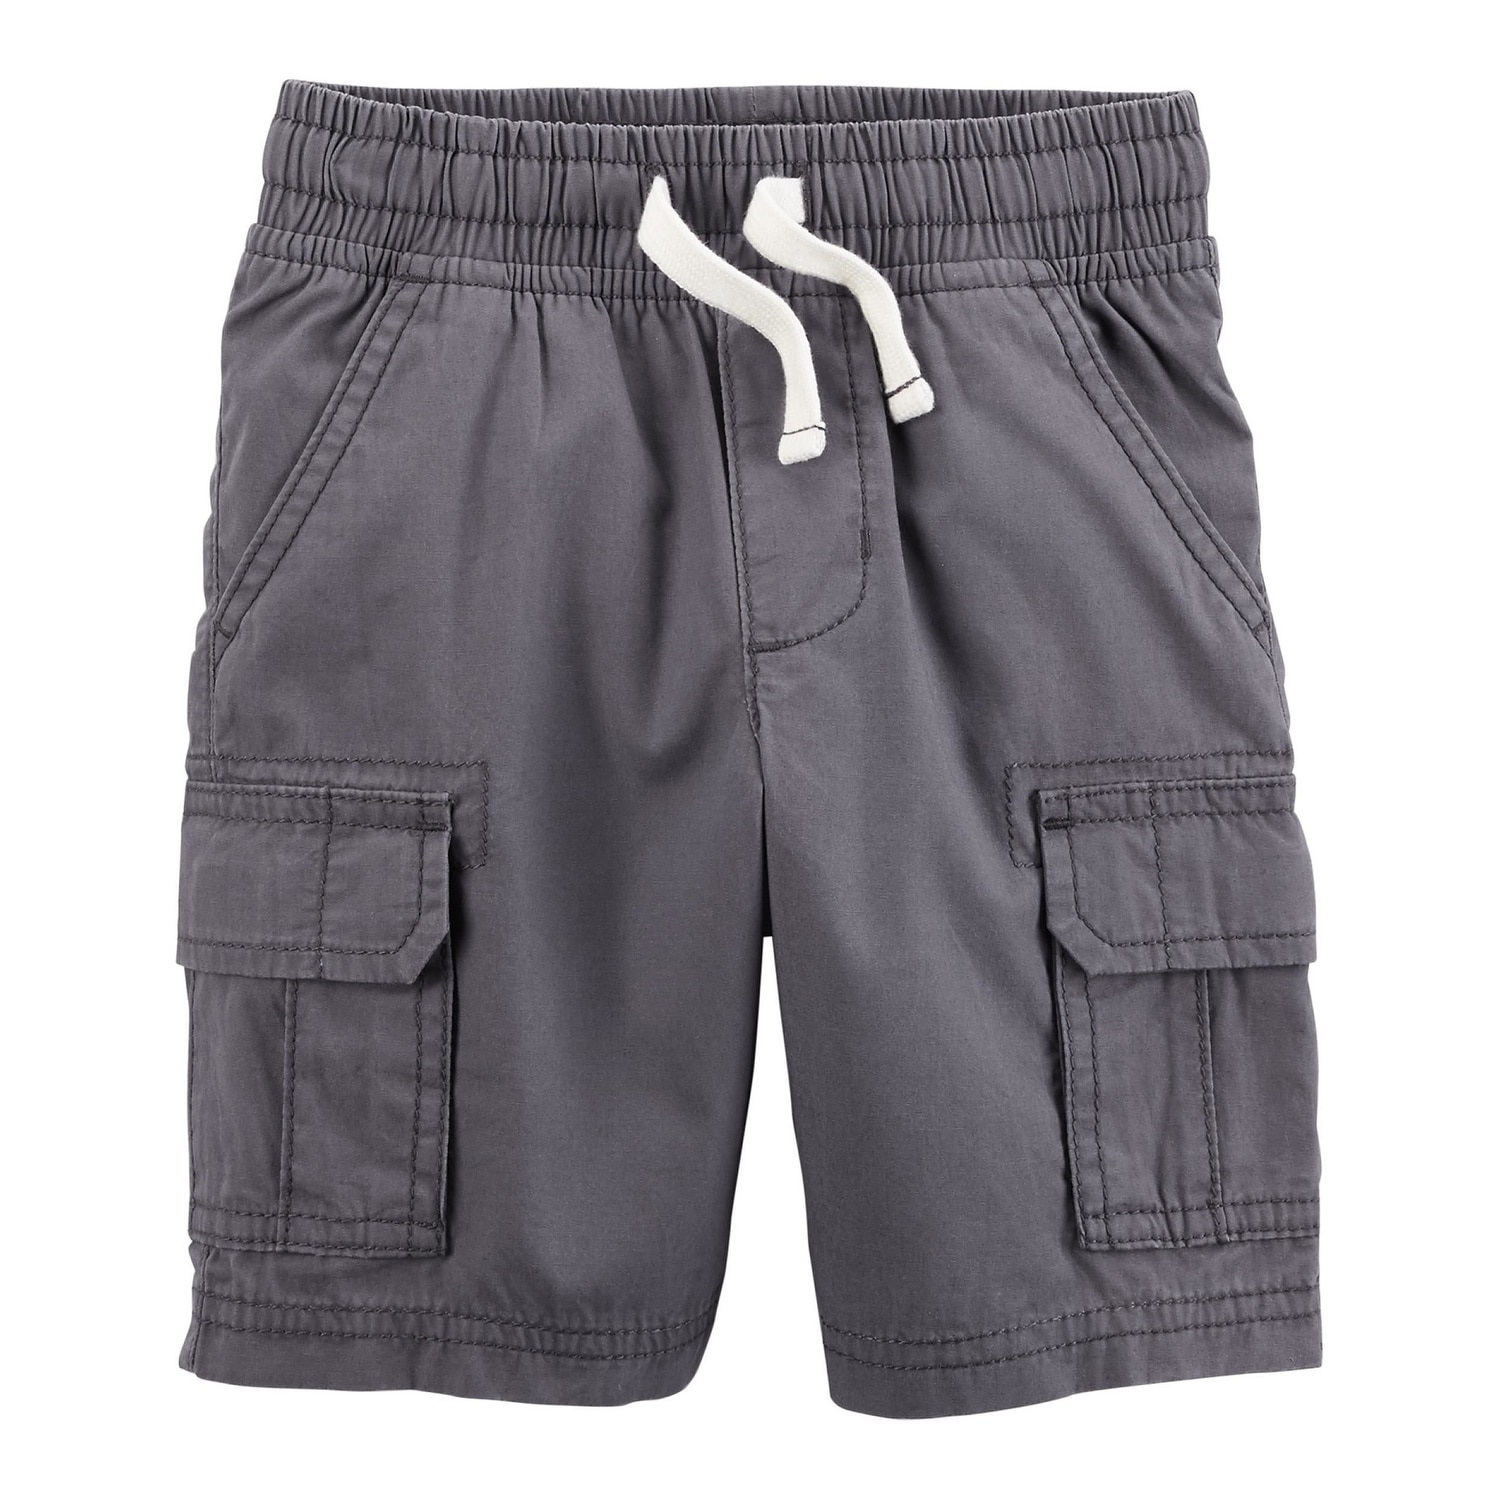 26ec28883 Shop Carter's Baby Boys' Easy Pull-On Cargo Shorts - Free Shipping On  Orders Over $45 - Overstock - 26885966